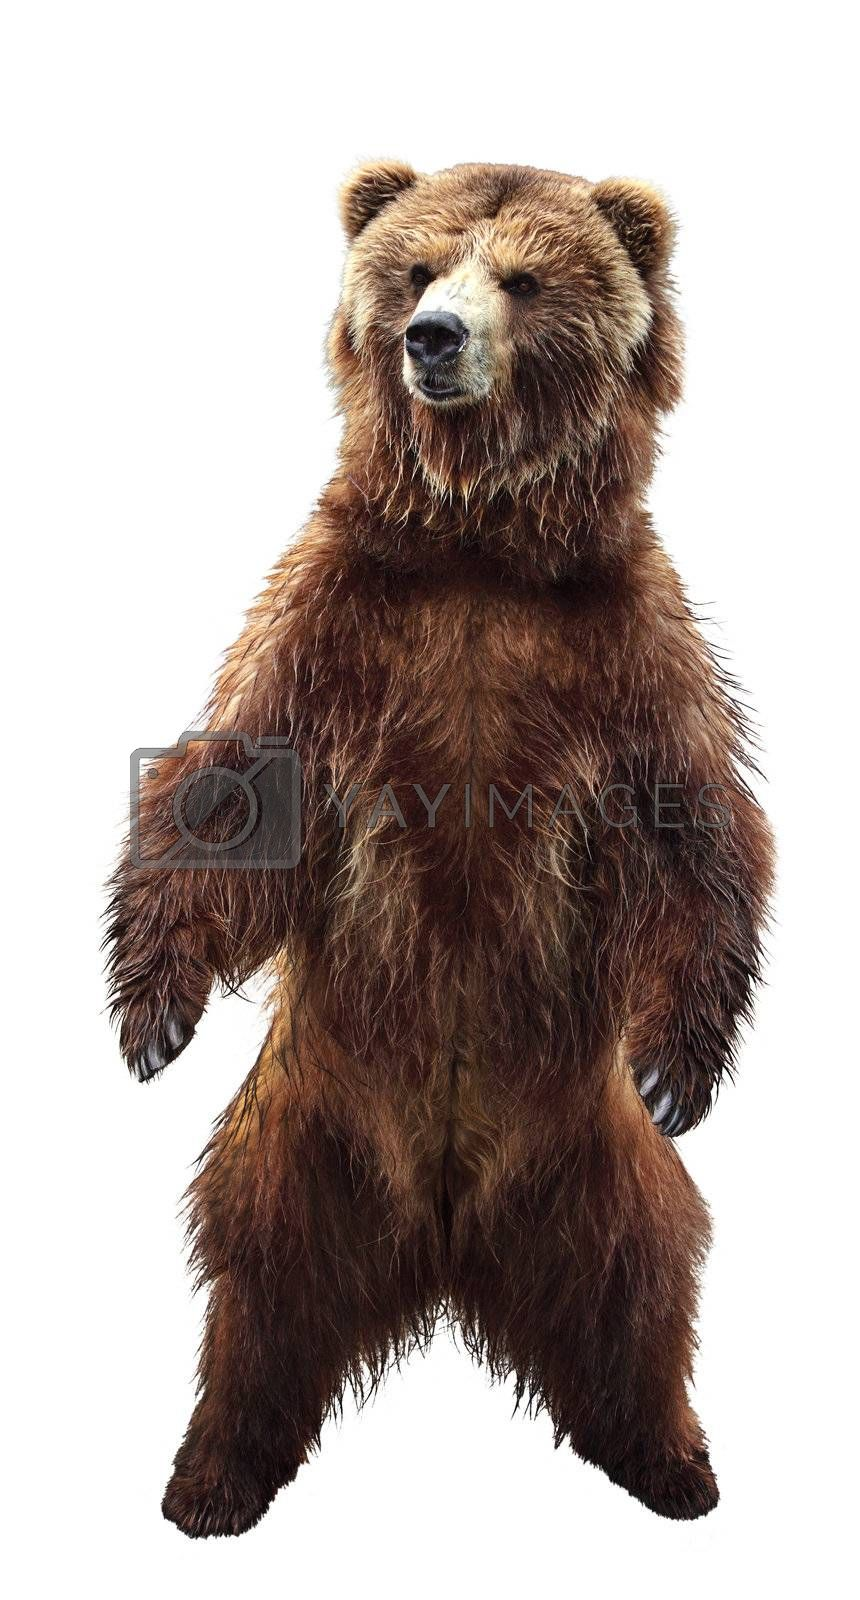 Big standing brown bear, isolated